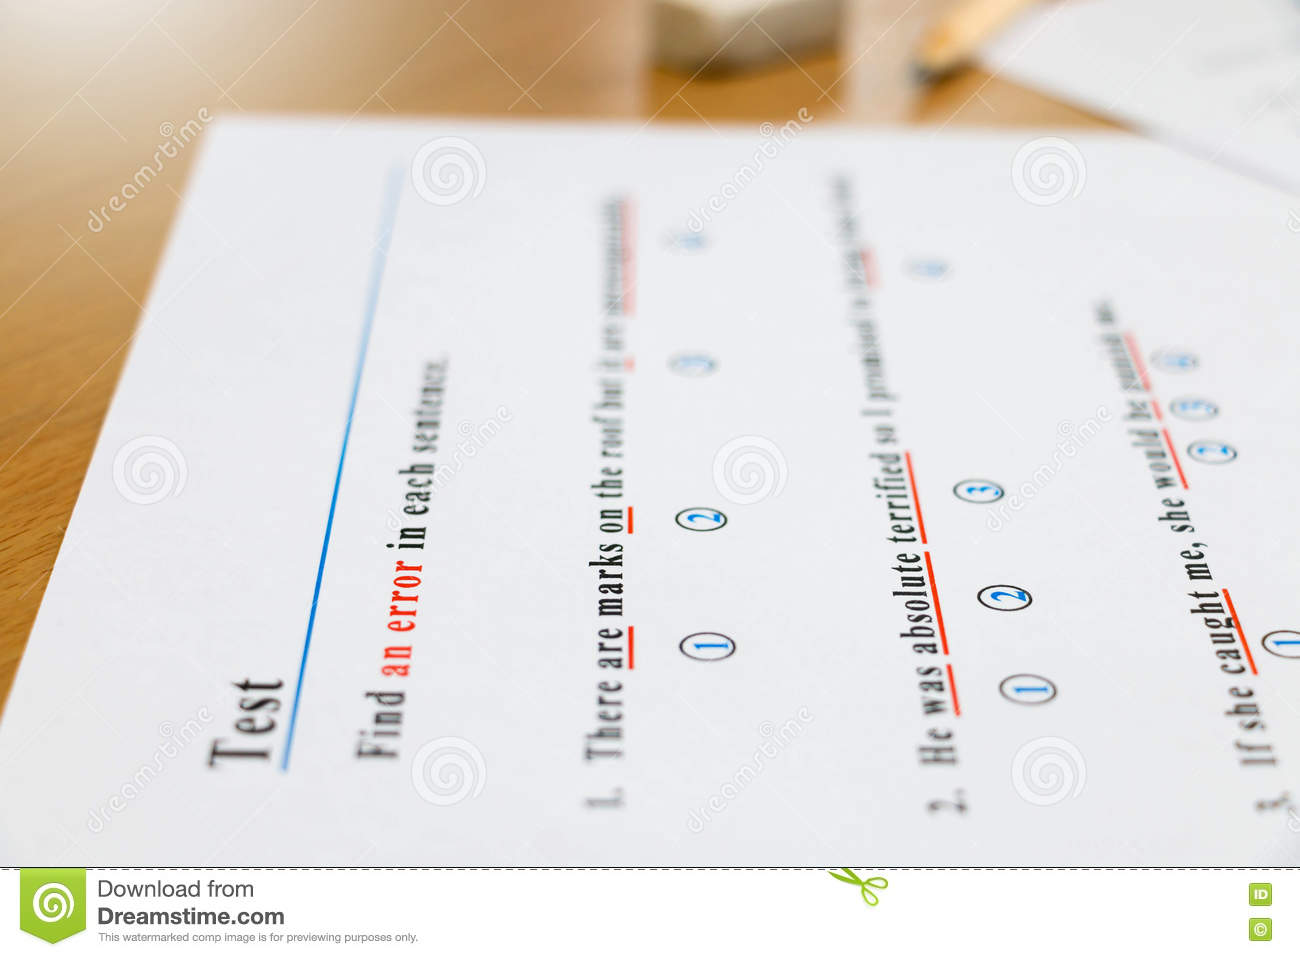 English Test And Answer Sheet On Table Stock Image - Image of